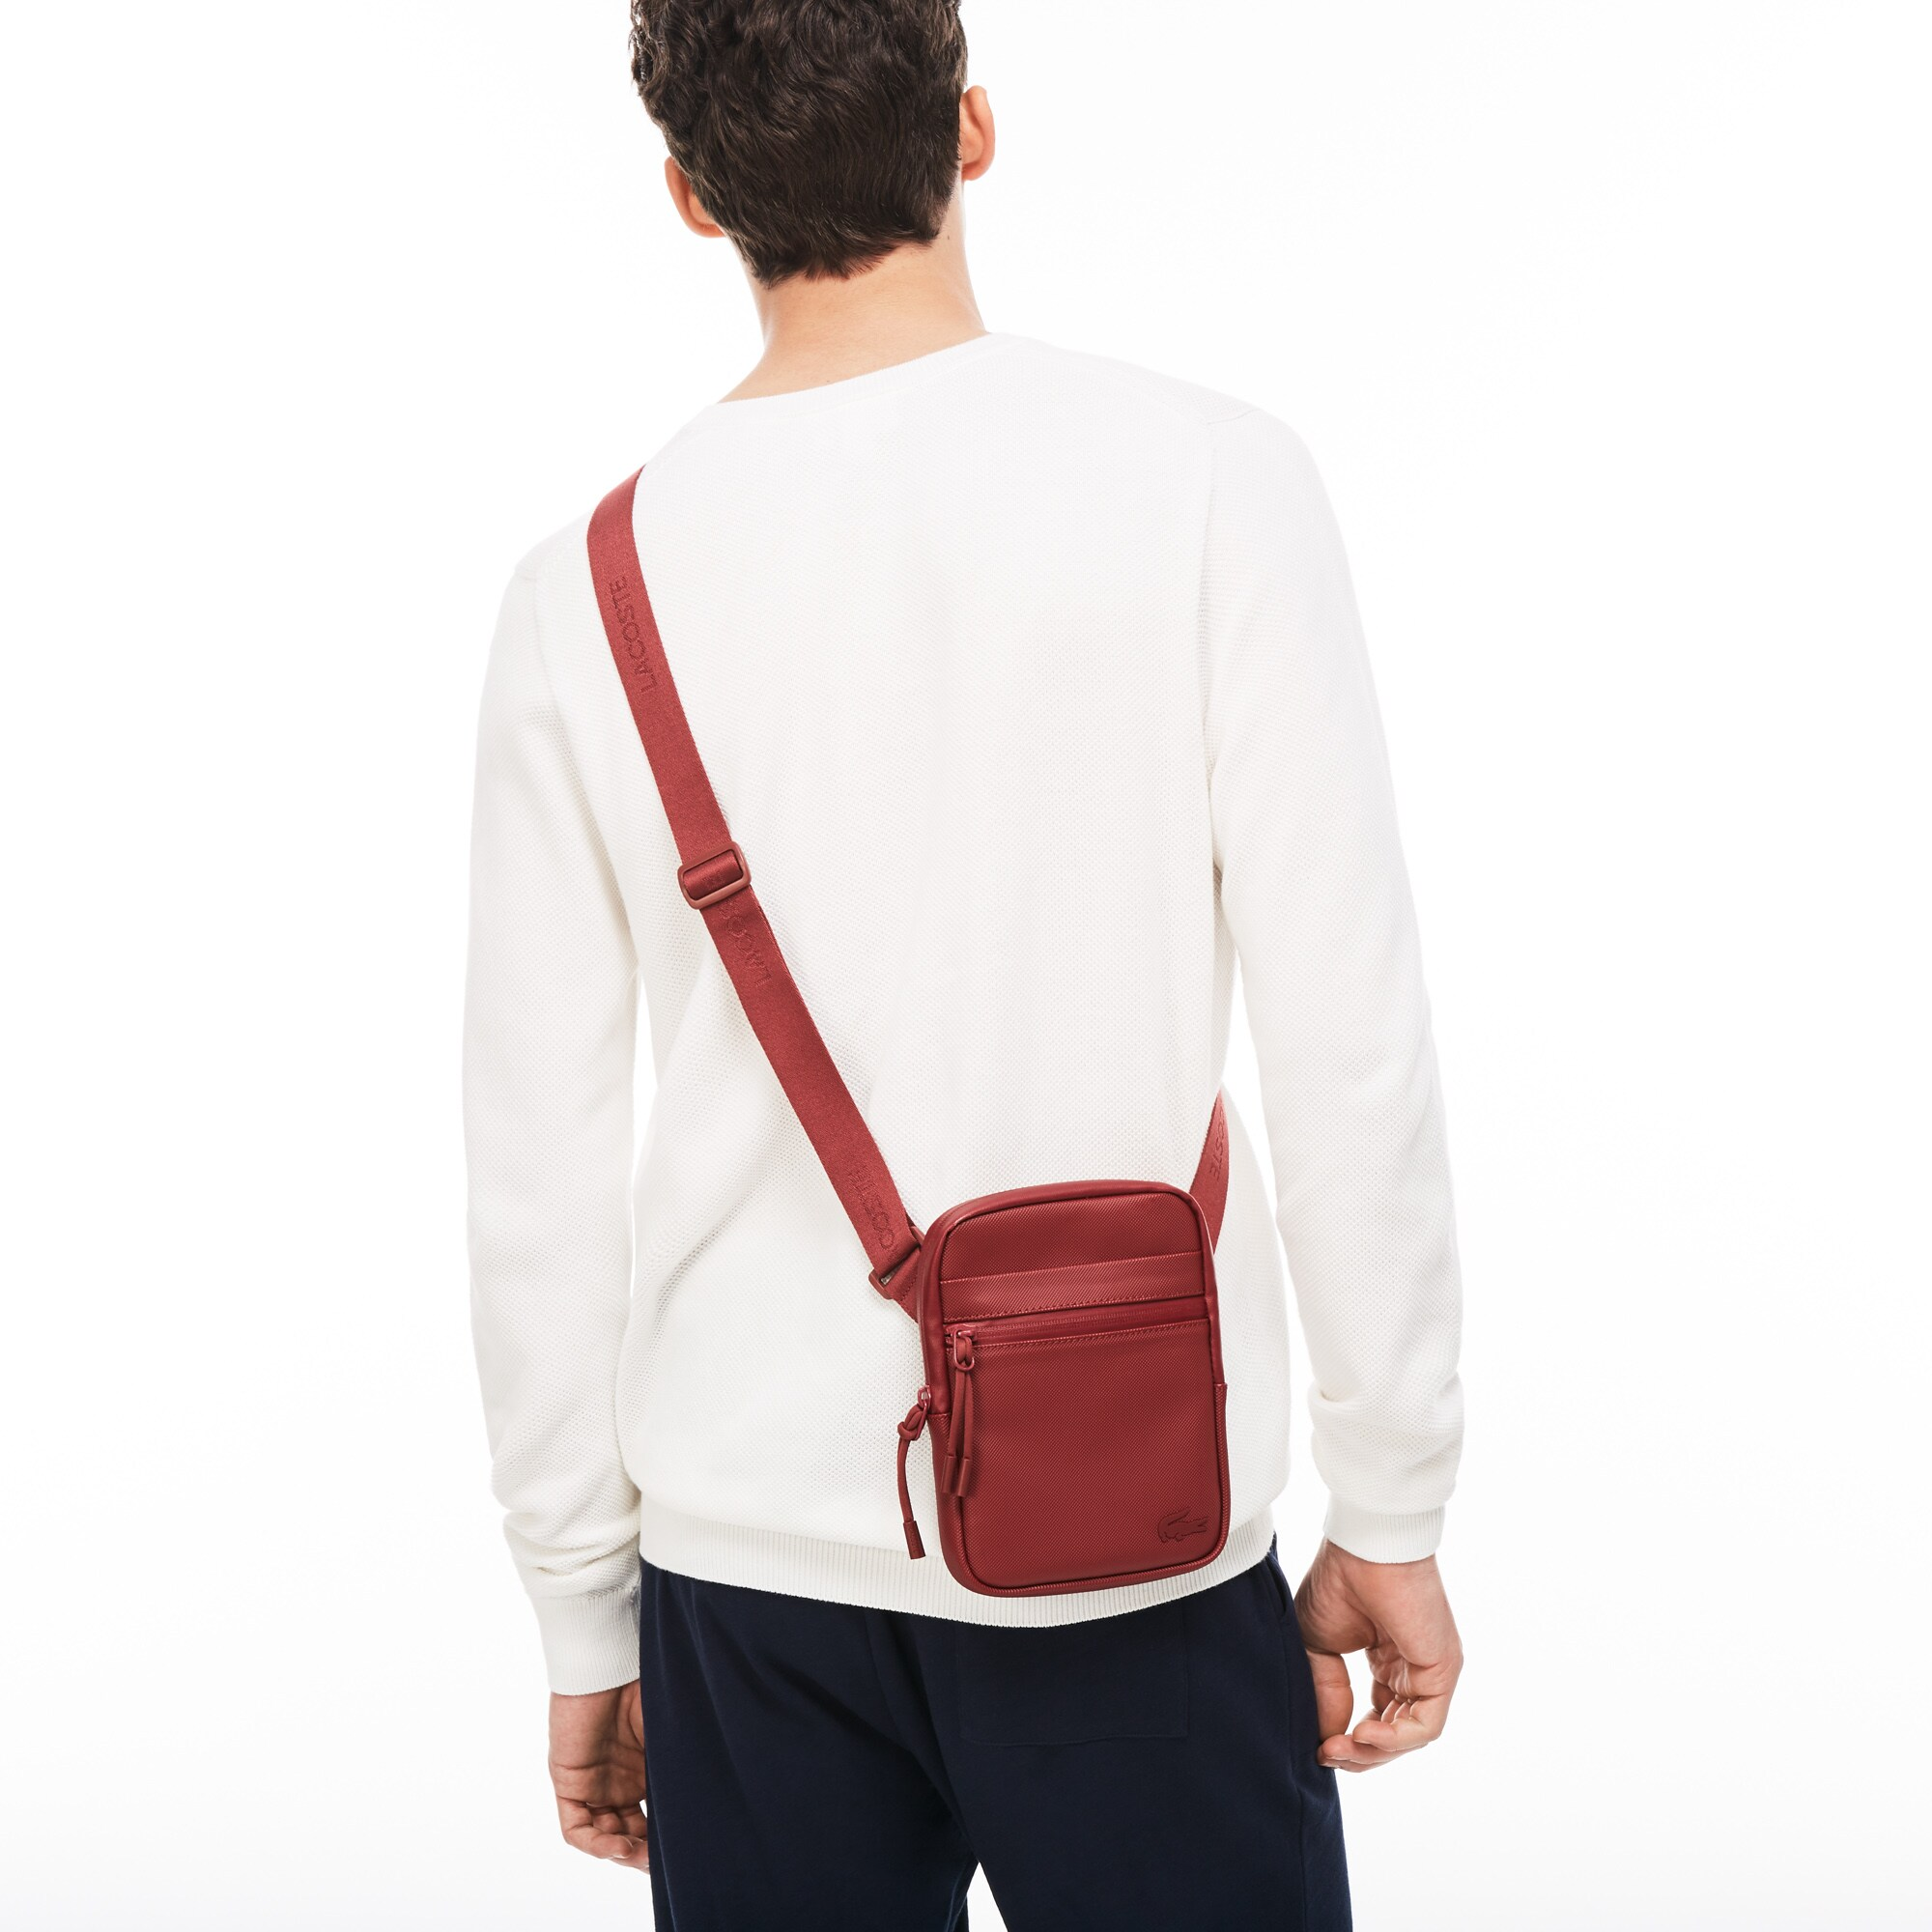 Men's L.12.12 Concept Petit Piqué Small Flat Zip Bag